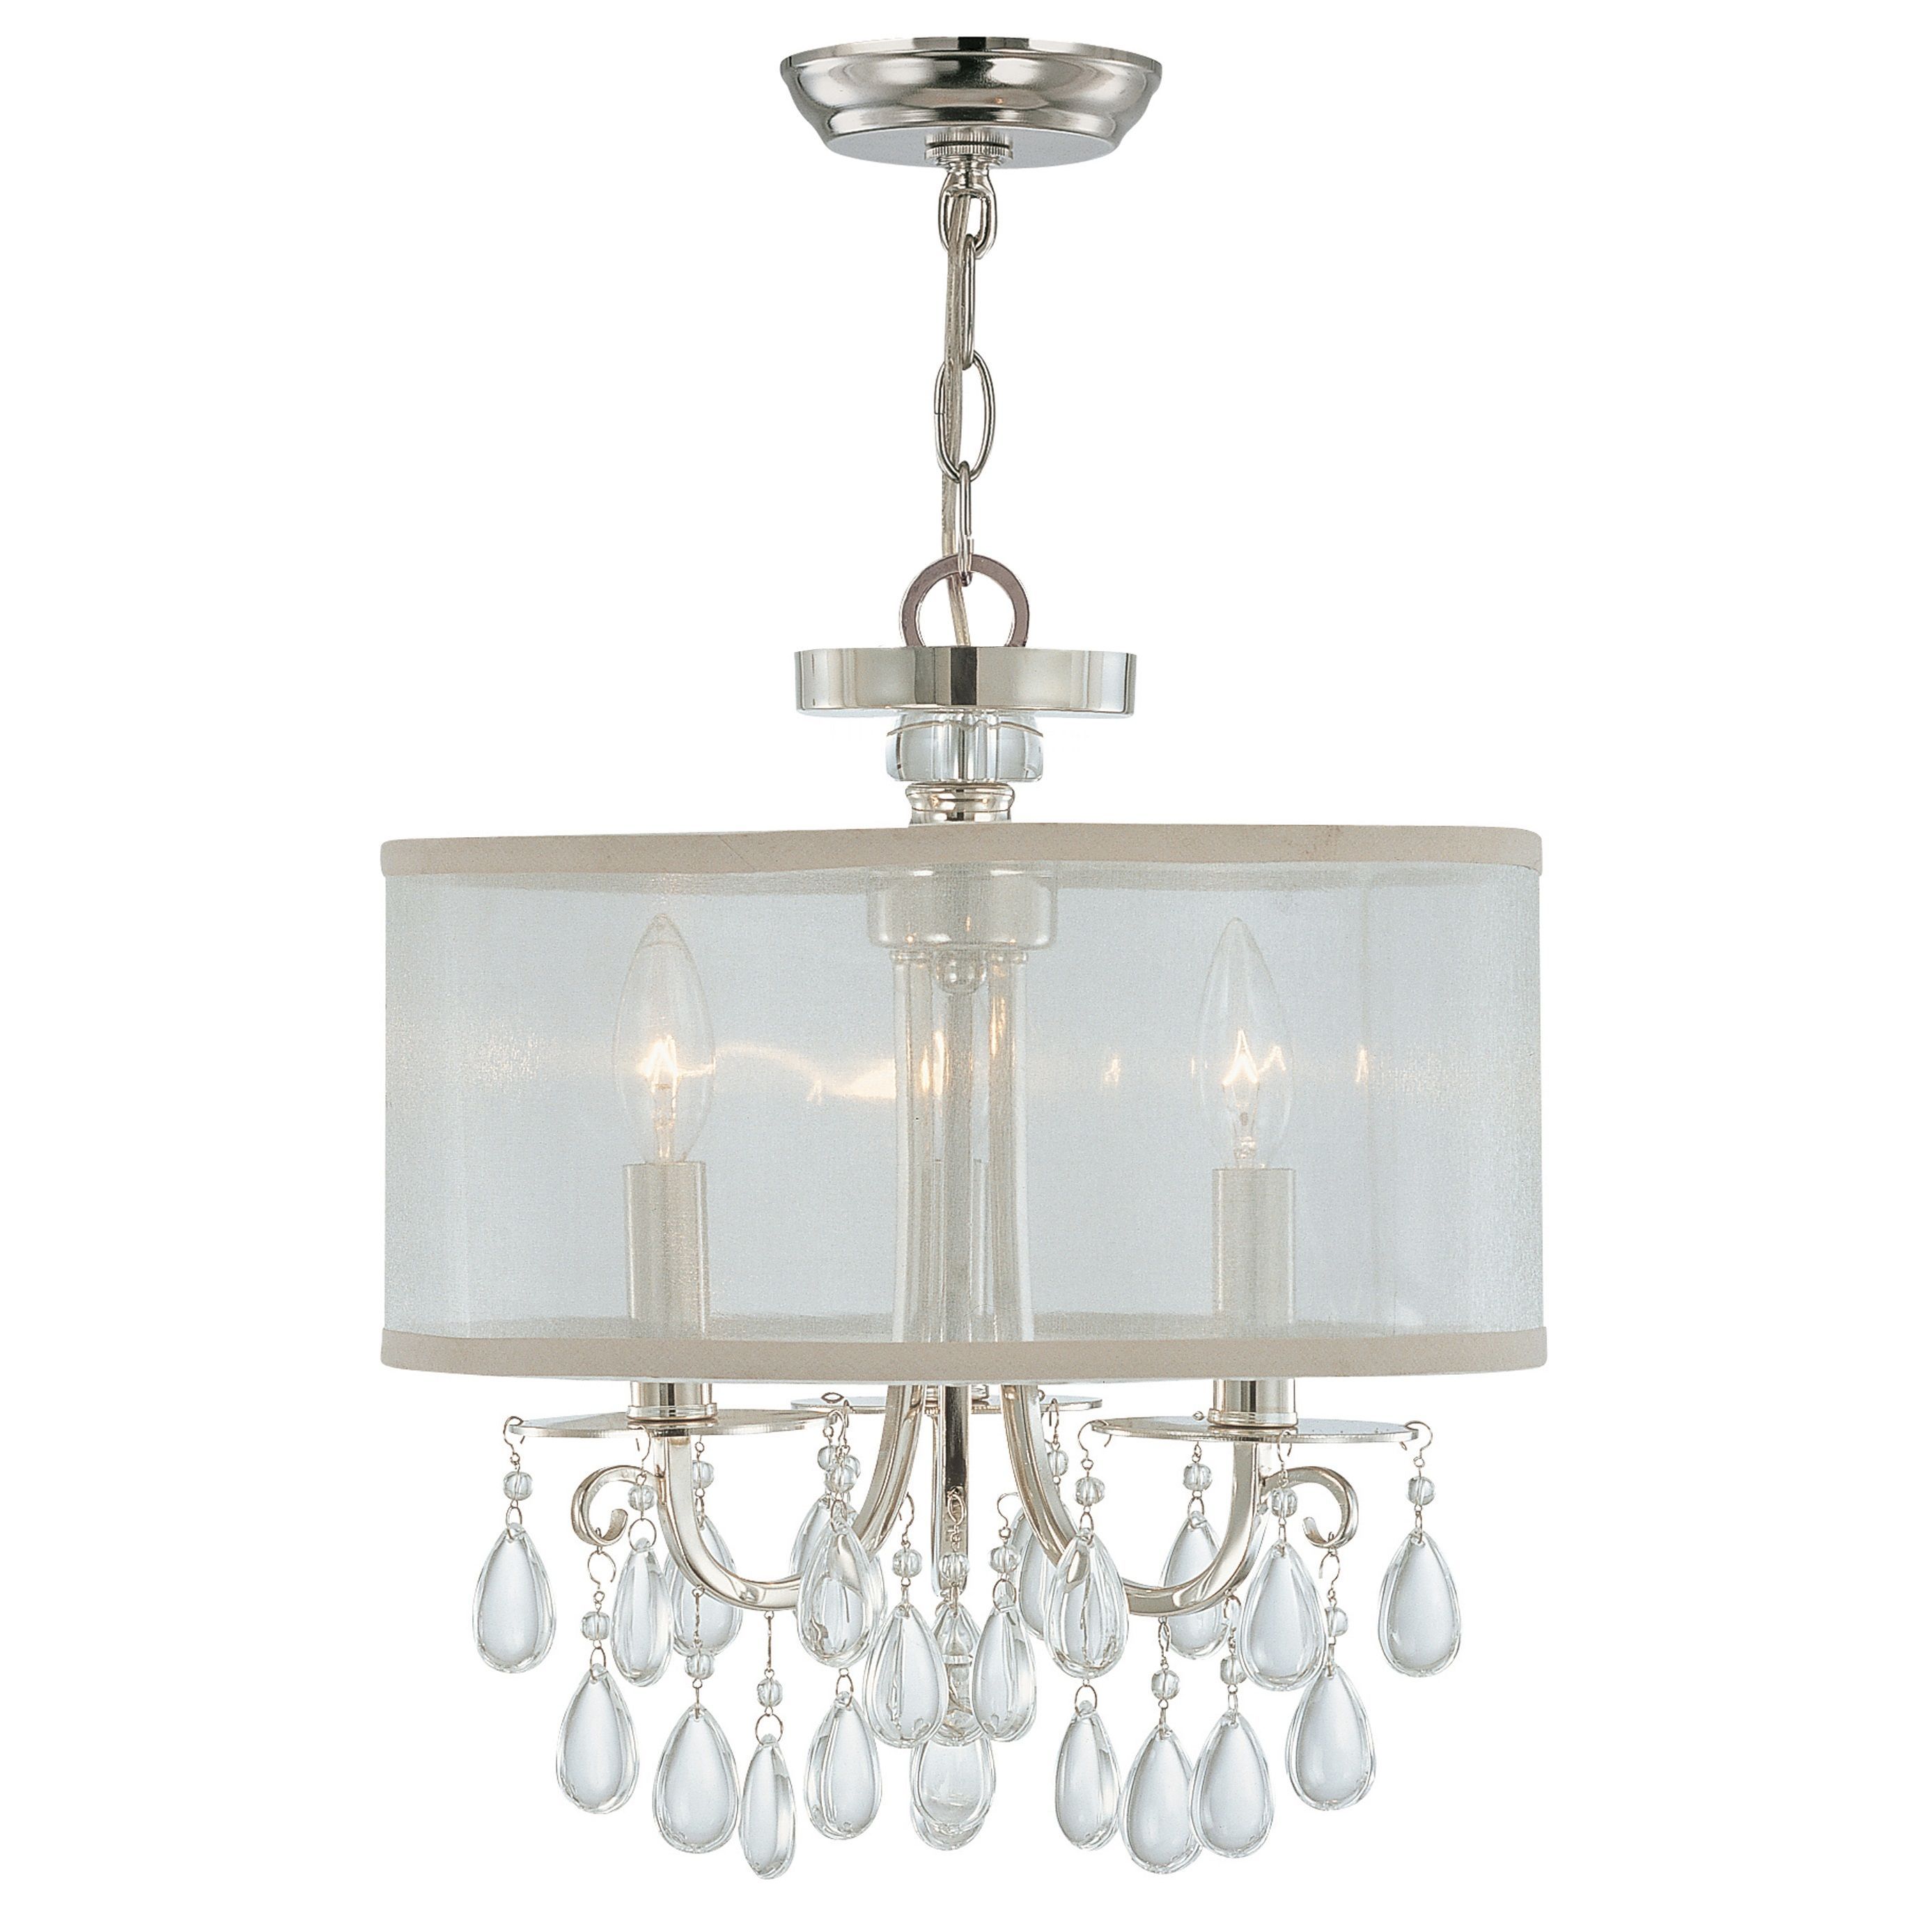 Crystorama lighting group 5623 ch polished chrome hampton 3 light 14 crystorama lighting group 5623 ch polished chrome hampton 3 light 14 wide drum chandelier with etruscan smooth teardrop almond crystals arubaitofo Images